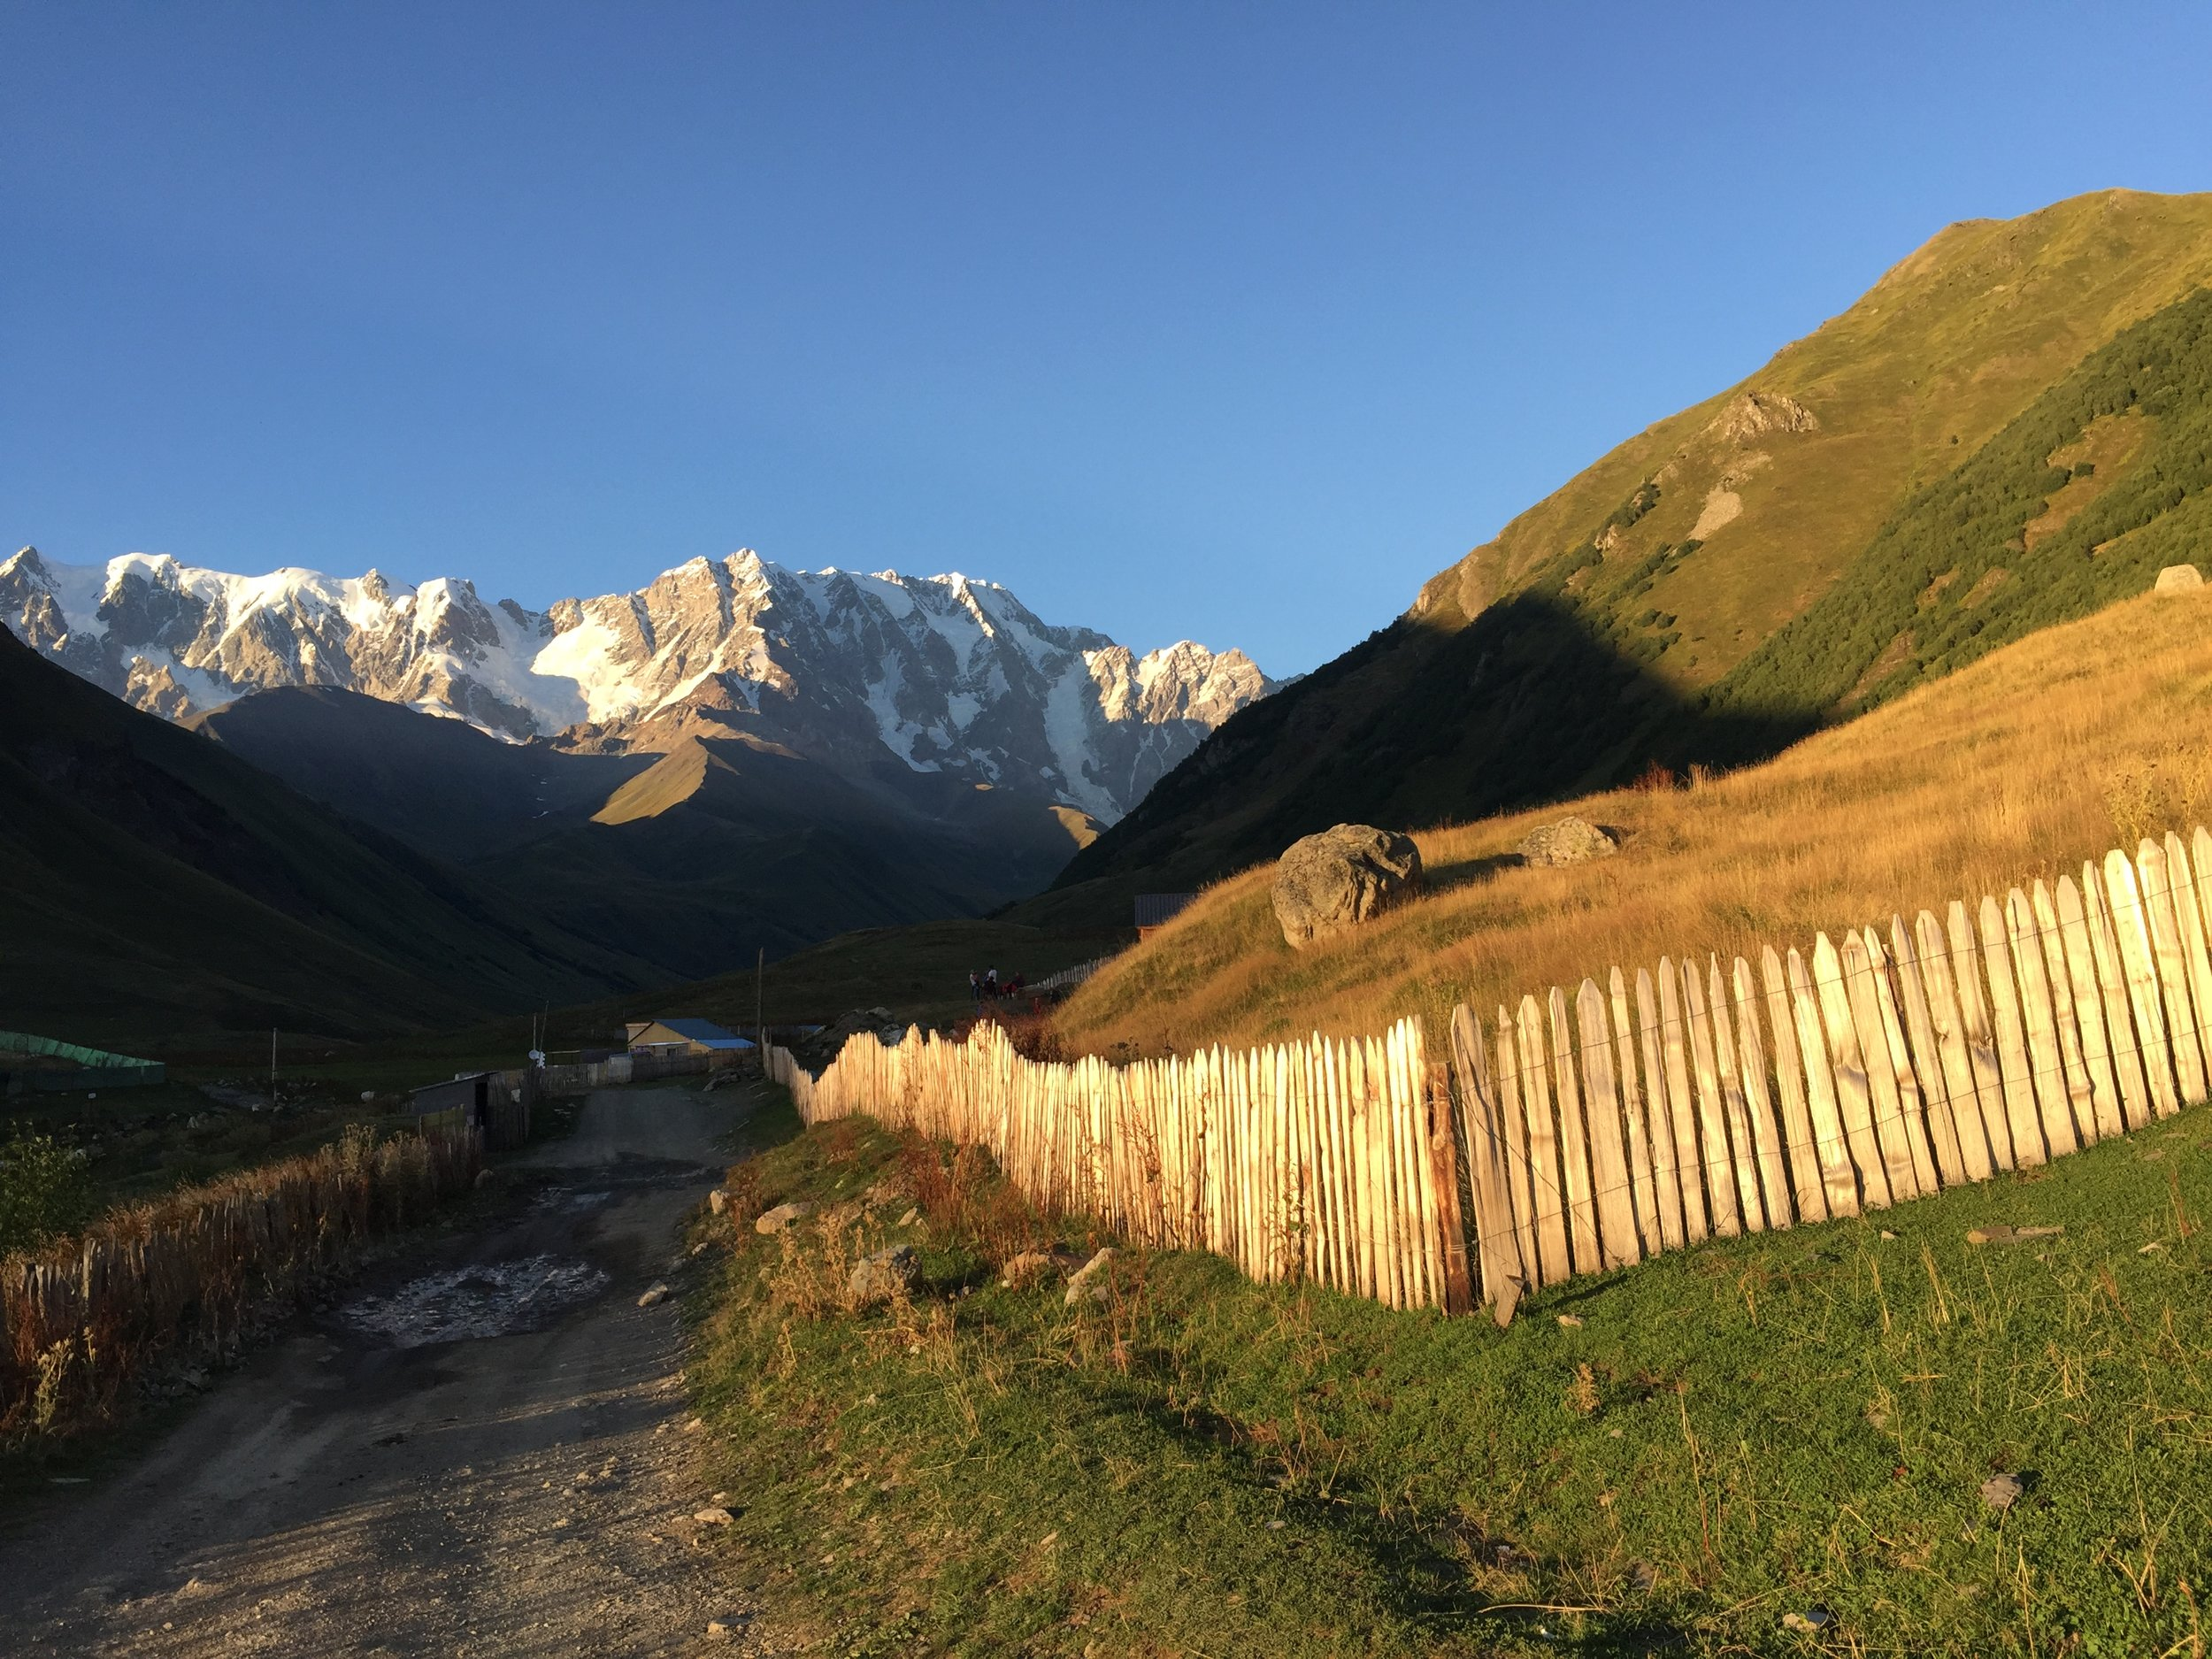 A rugged road traverses mountainous countryside near Ushguli, Georgia. A rickety wooden fence is lit by the evening sunlight.